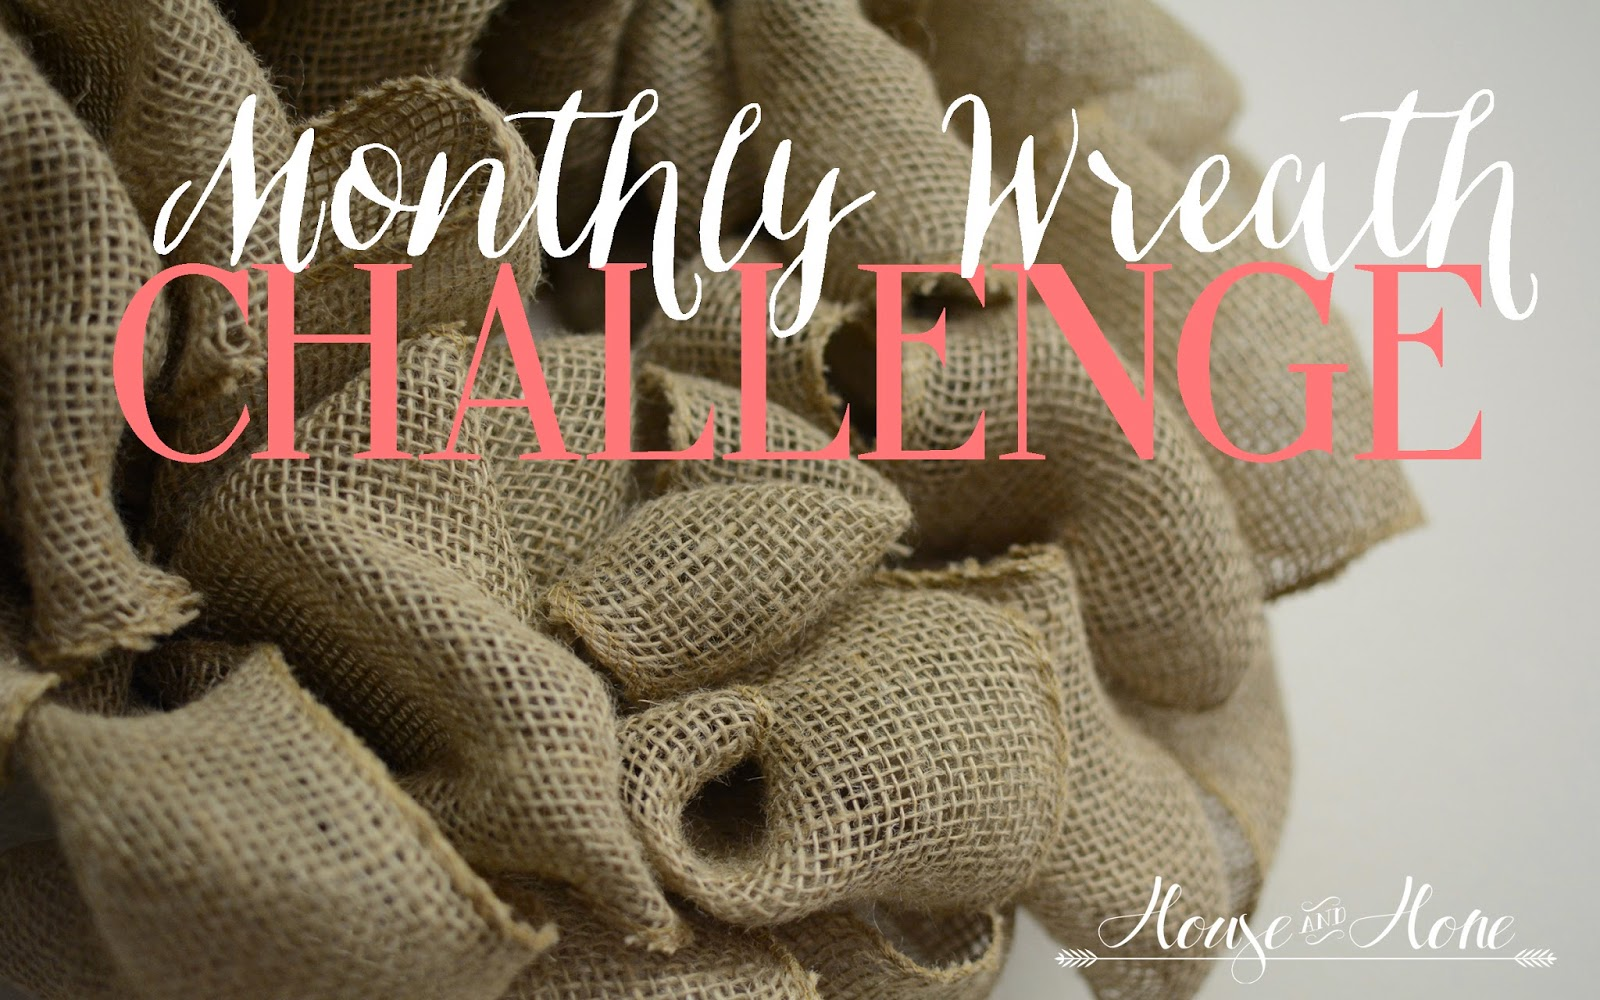 Monthly Wreath Challenge